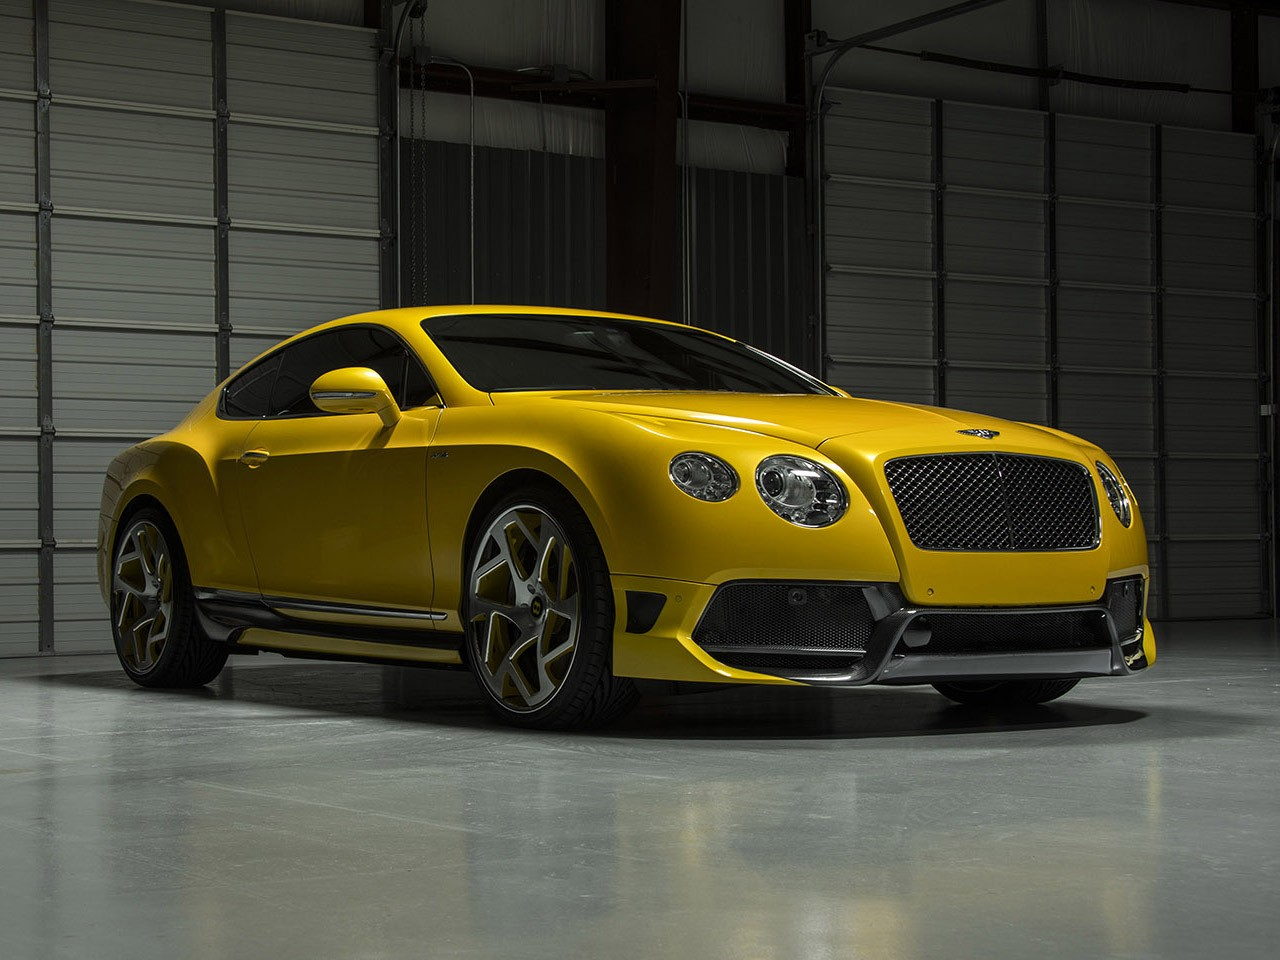 2015 Vorsteiner Bentley Continental GT BR10 RS